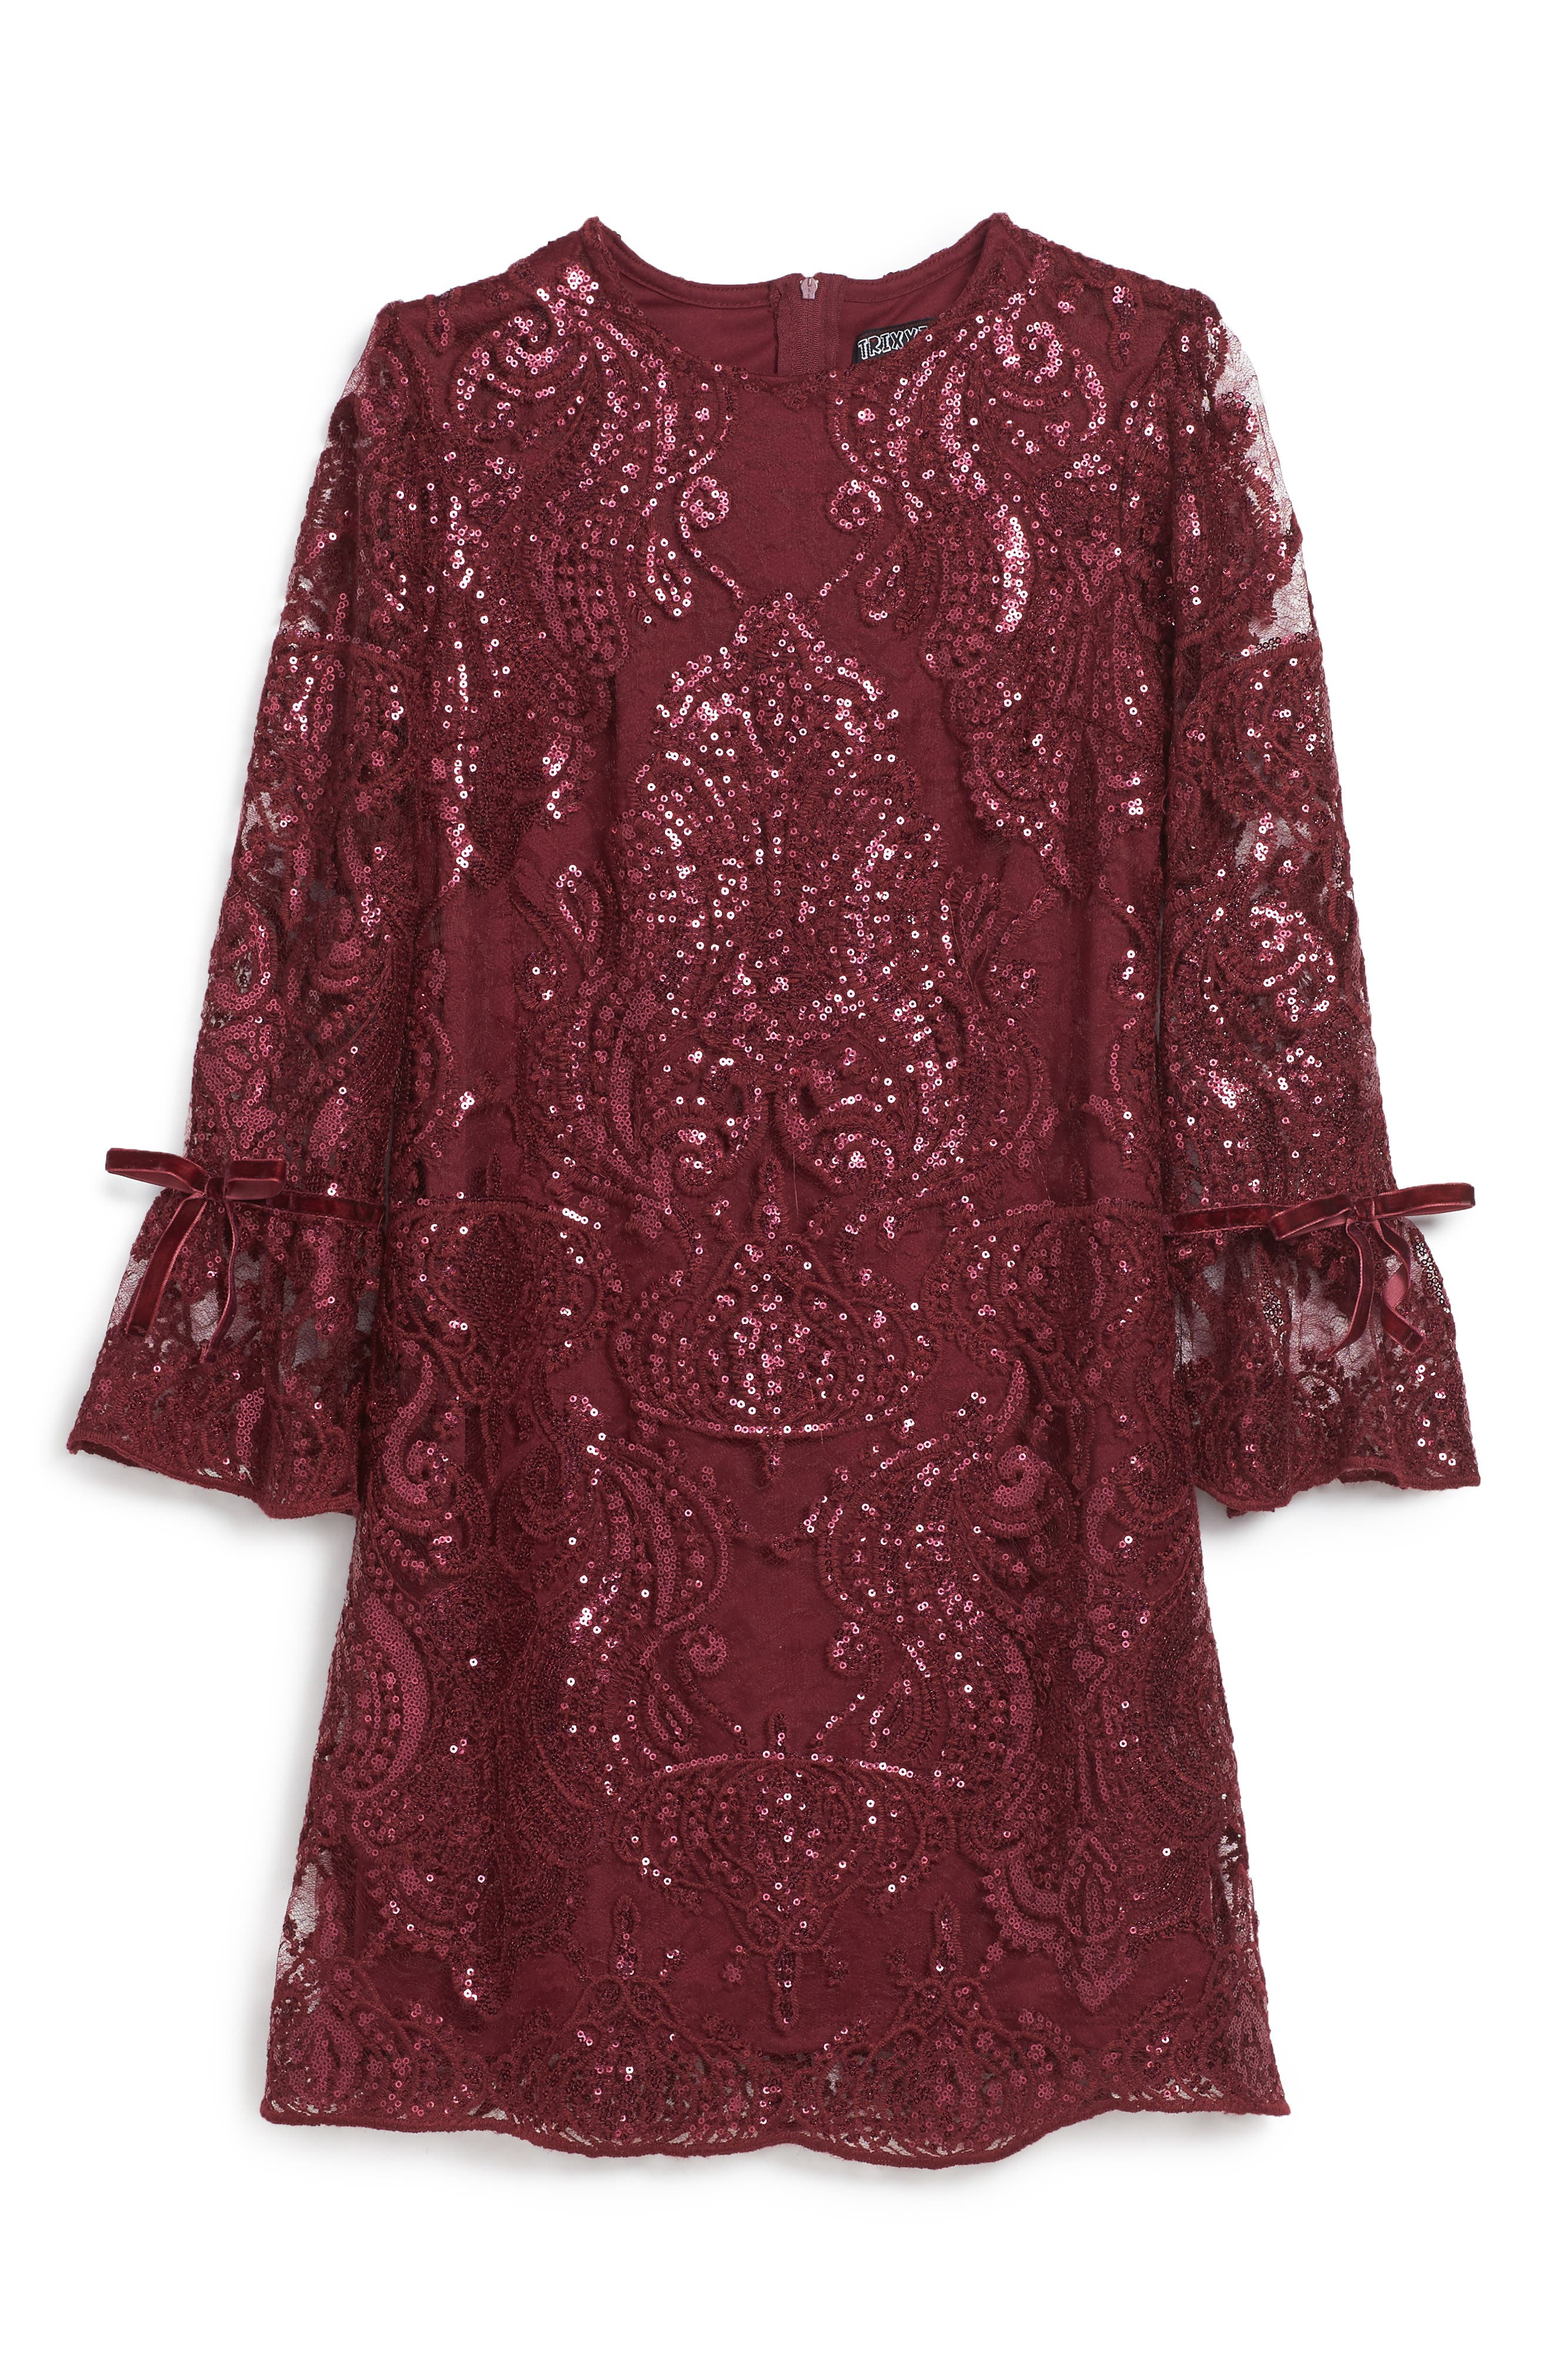 Scalloped Sequin Embellished Shift Dress,                             Main thumbnail 1, color,                             Burgundy